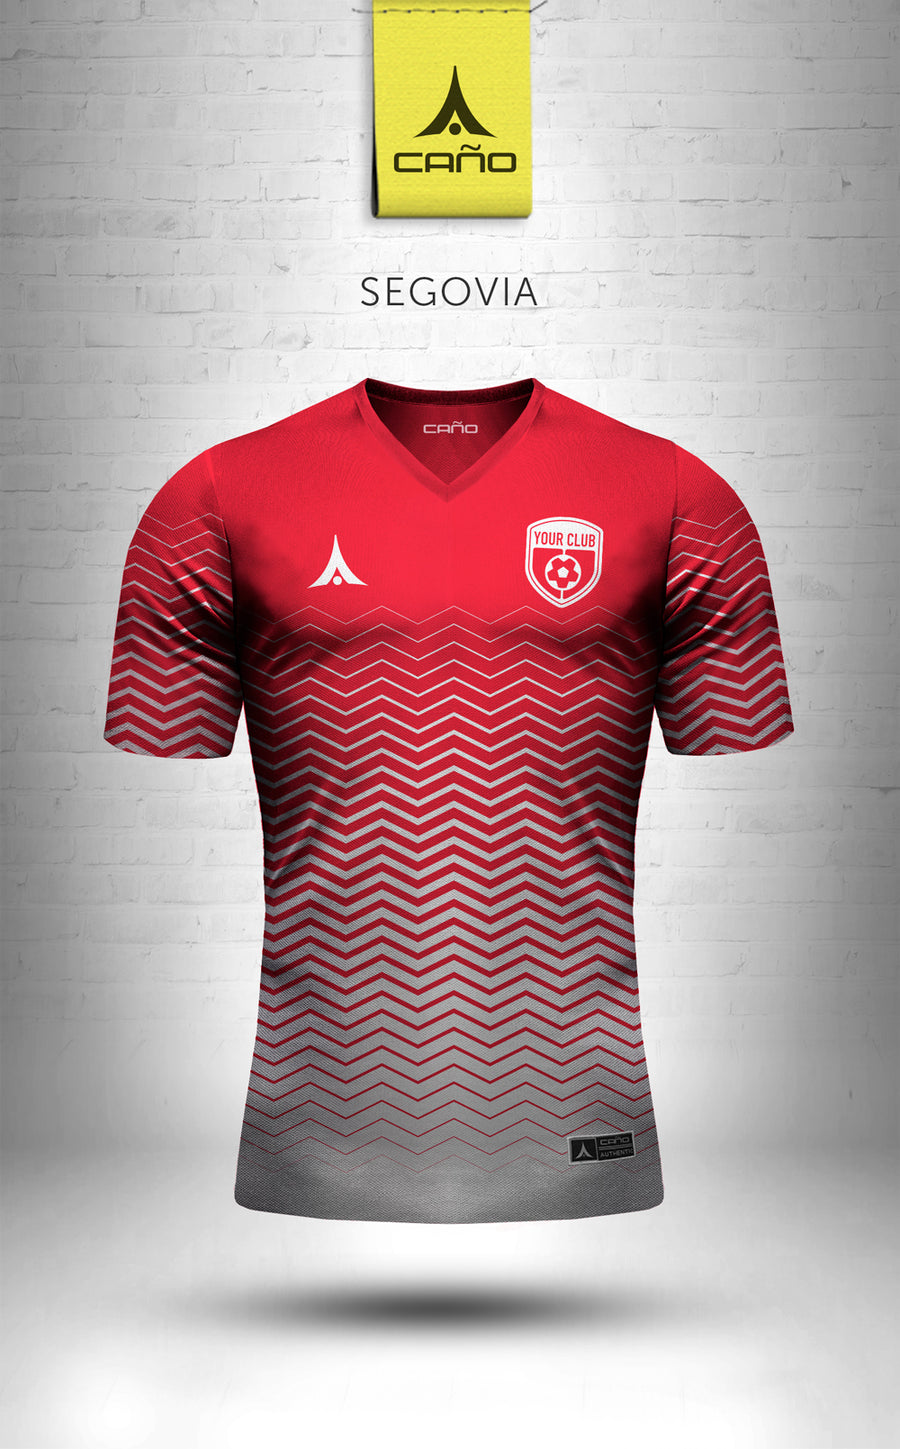 Segovia in red/white